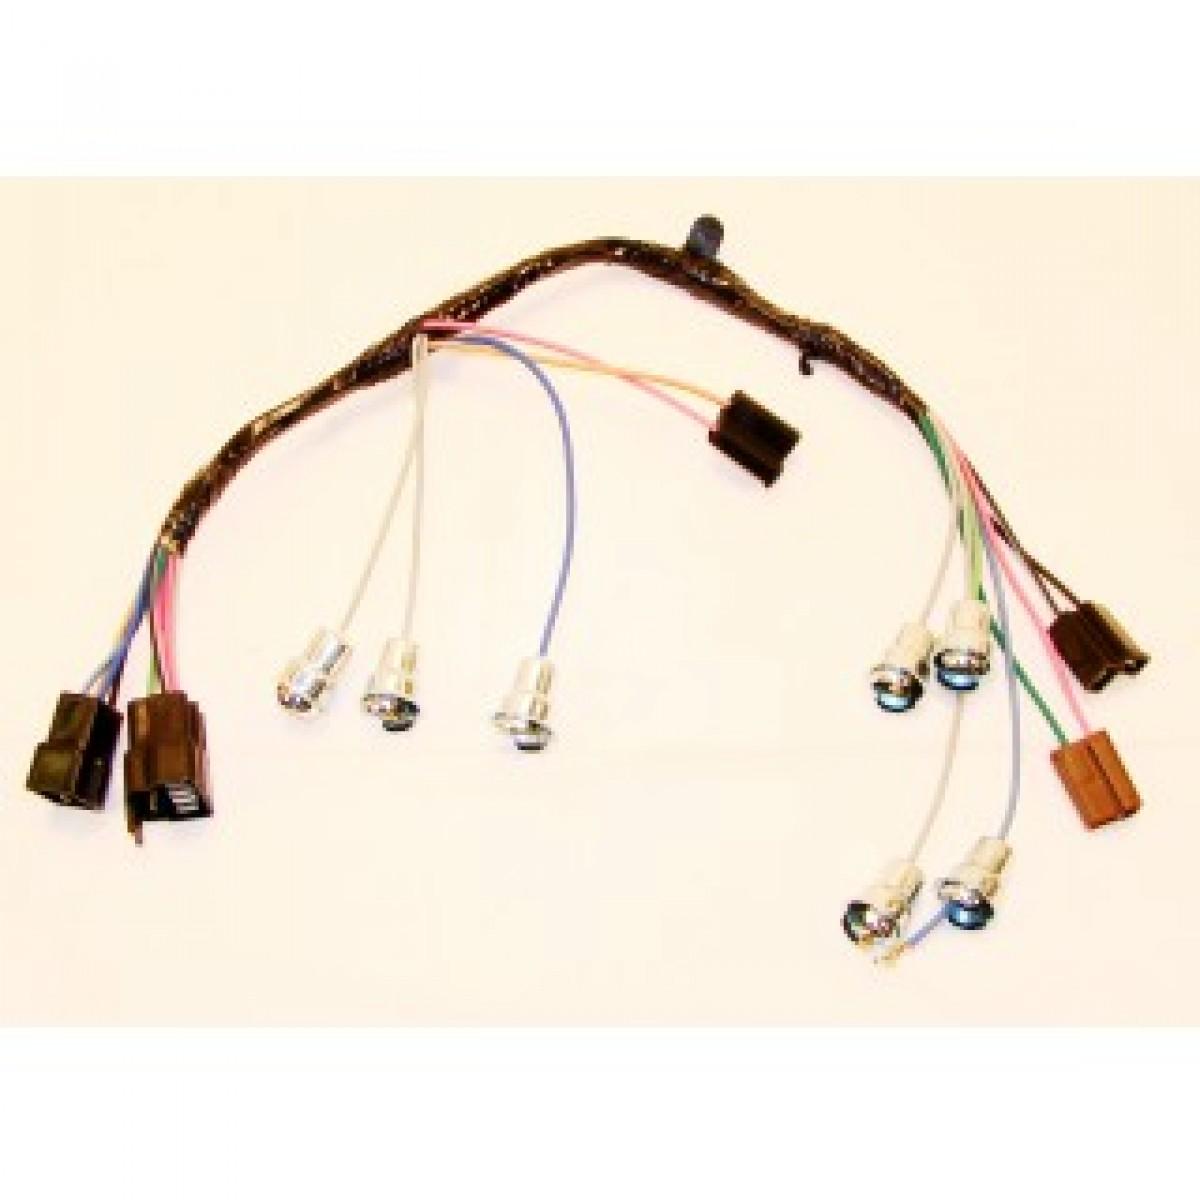 1964 1966 chevy c10 dash instrument cluster harness 04685 american auto wire 1964 chevy c10 wiring harness electrical, dash wires, chevy 78 chevy c10 wiring harness at bayanpartner.co